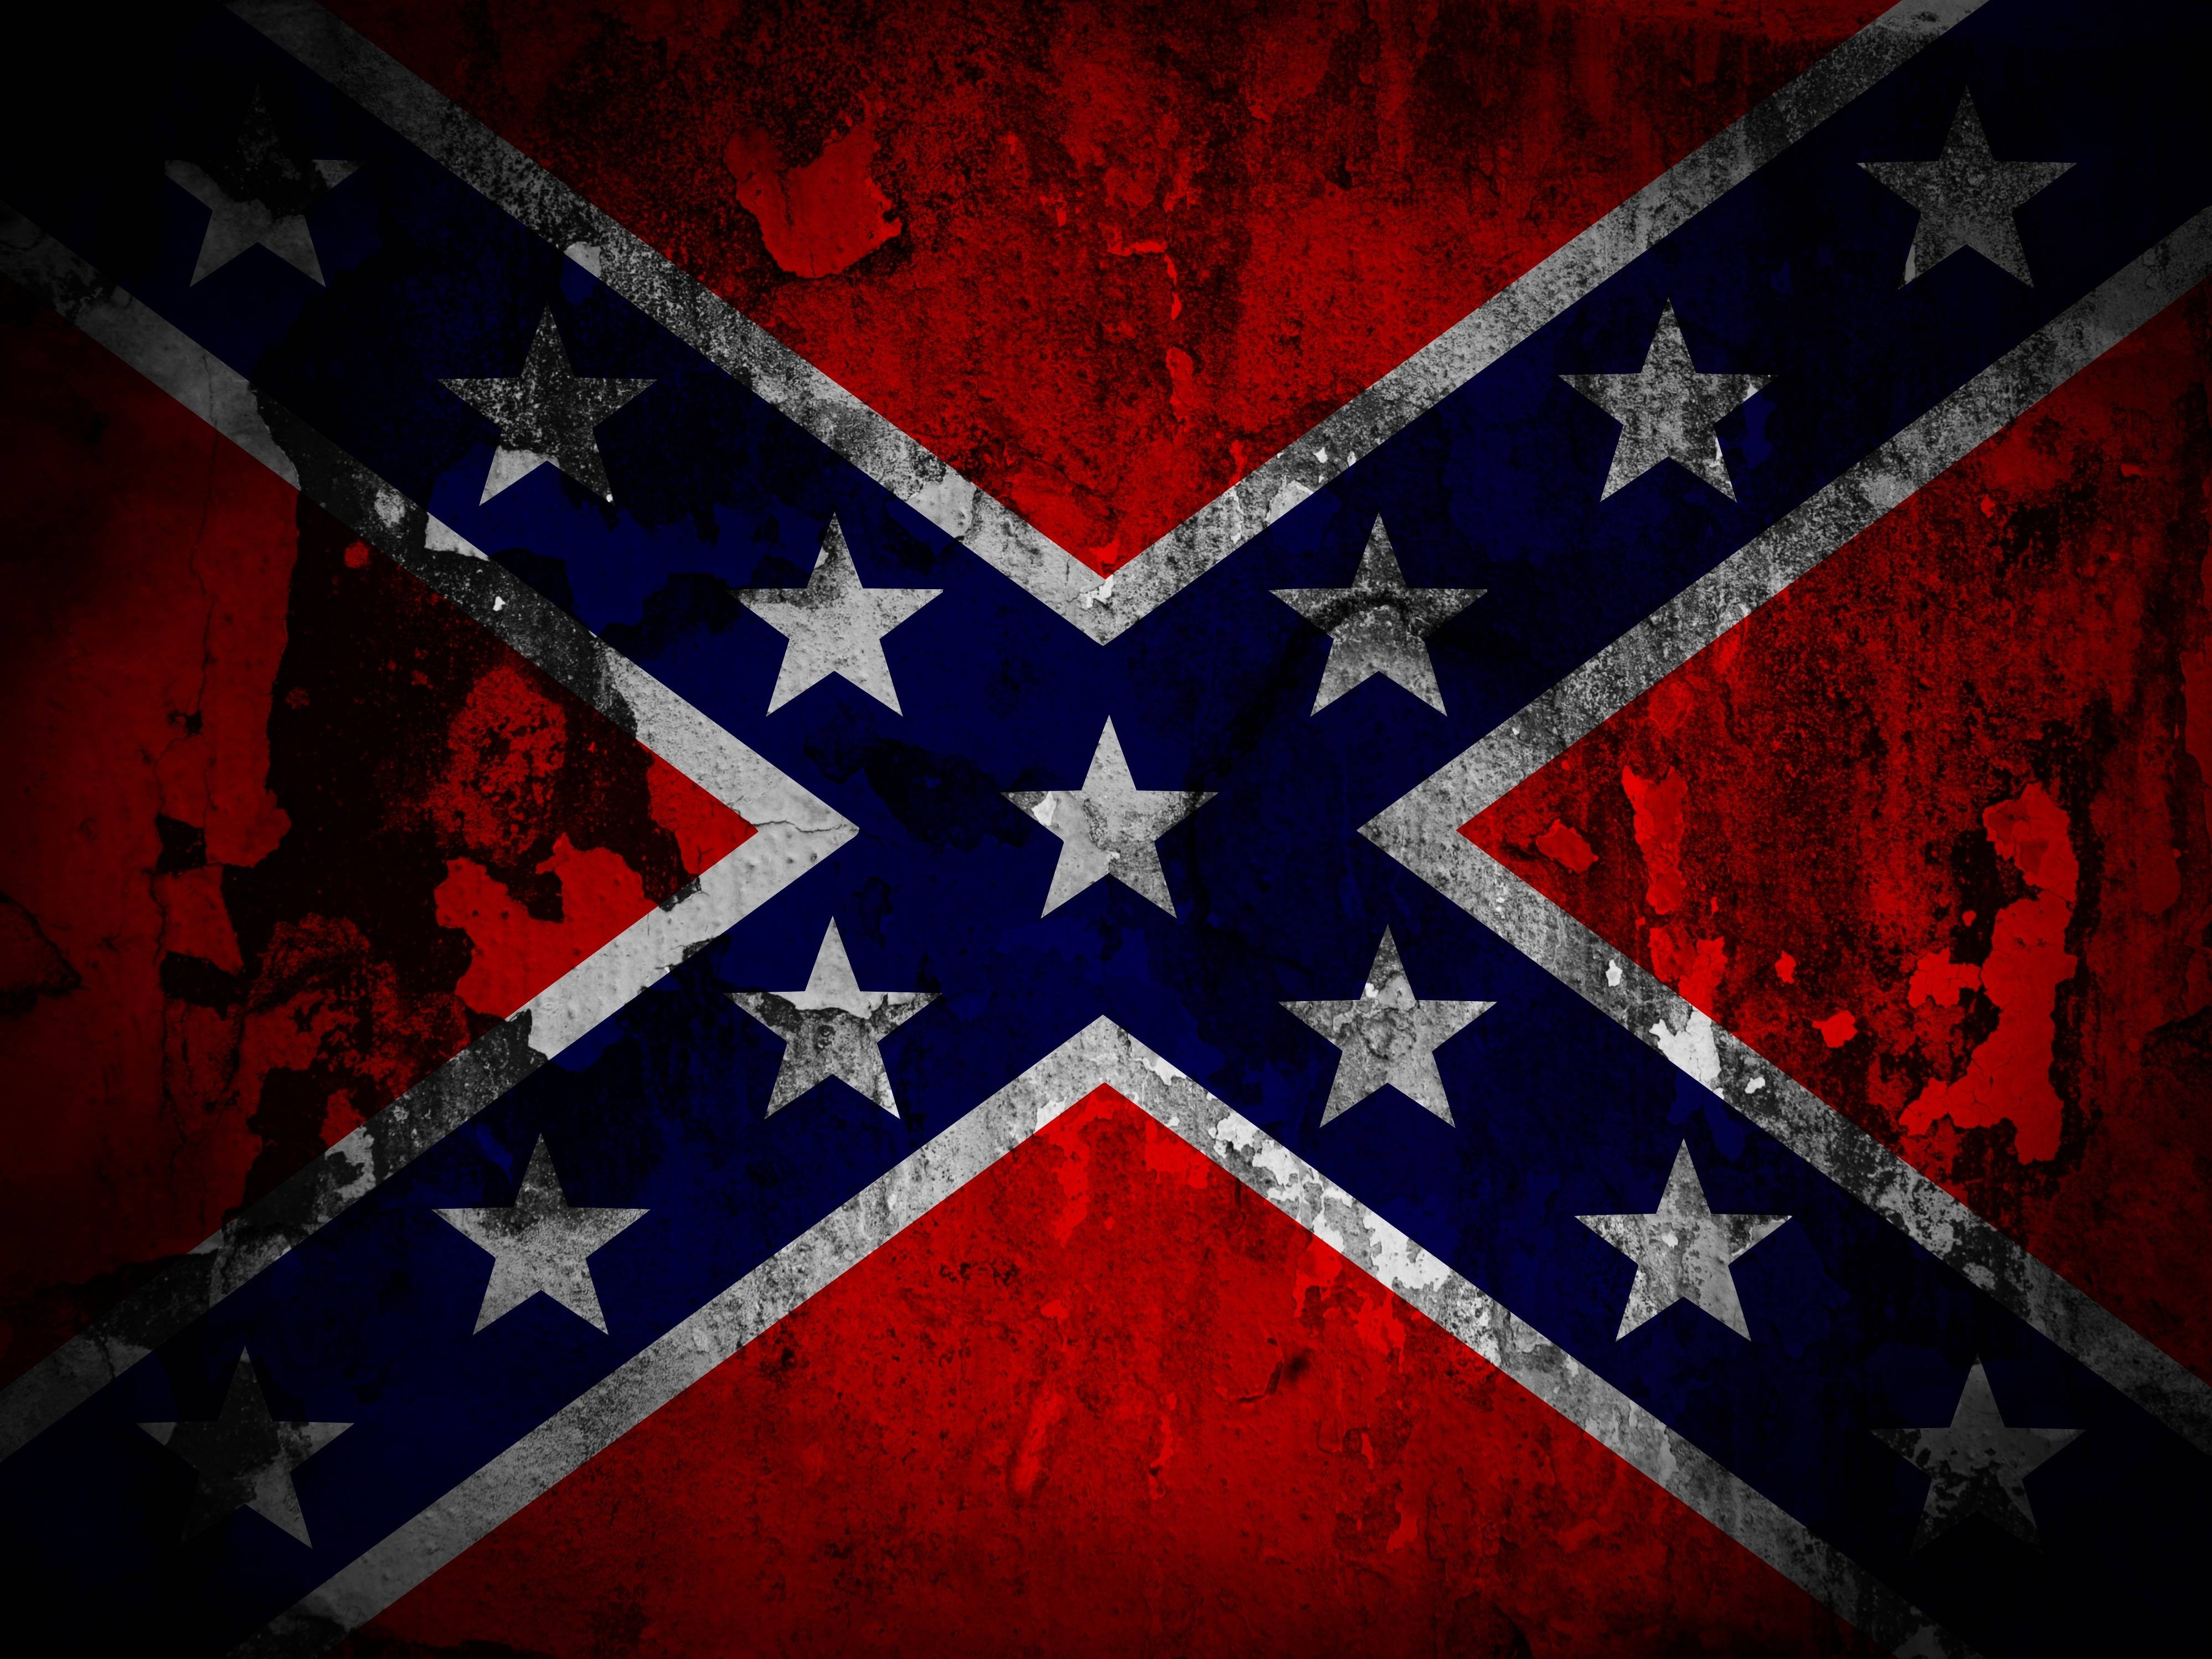 10 Latest Confederate Flag Wallpaper Hd FULL HD 1920×1080 For PC Background